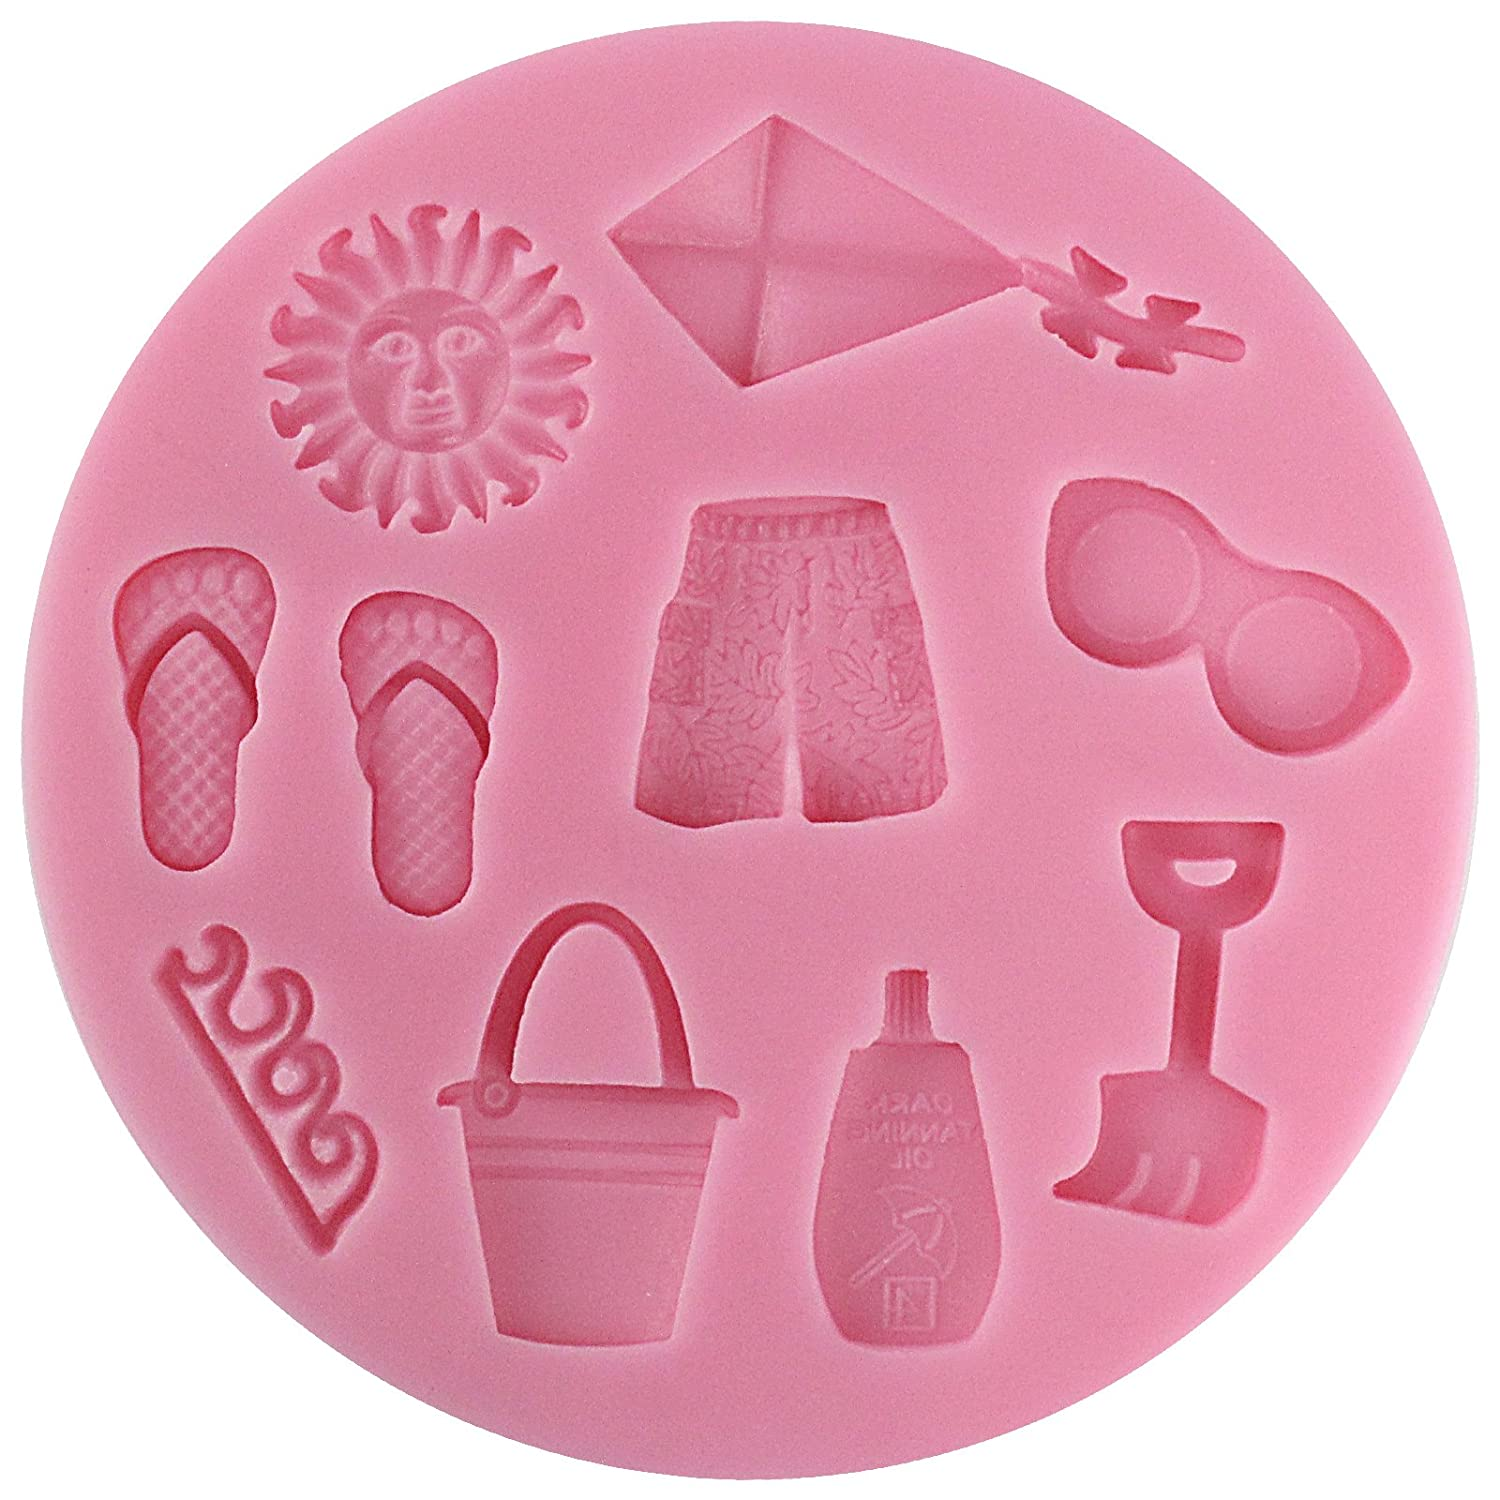 Polymer Clay Funshowcase Beach Holiday Silicone Mold Cake Decorating for Sugarcraft Fondant Crafting Projects Resin